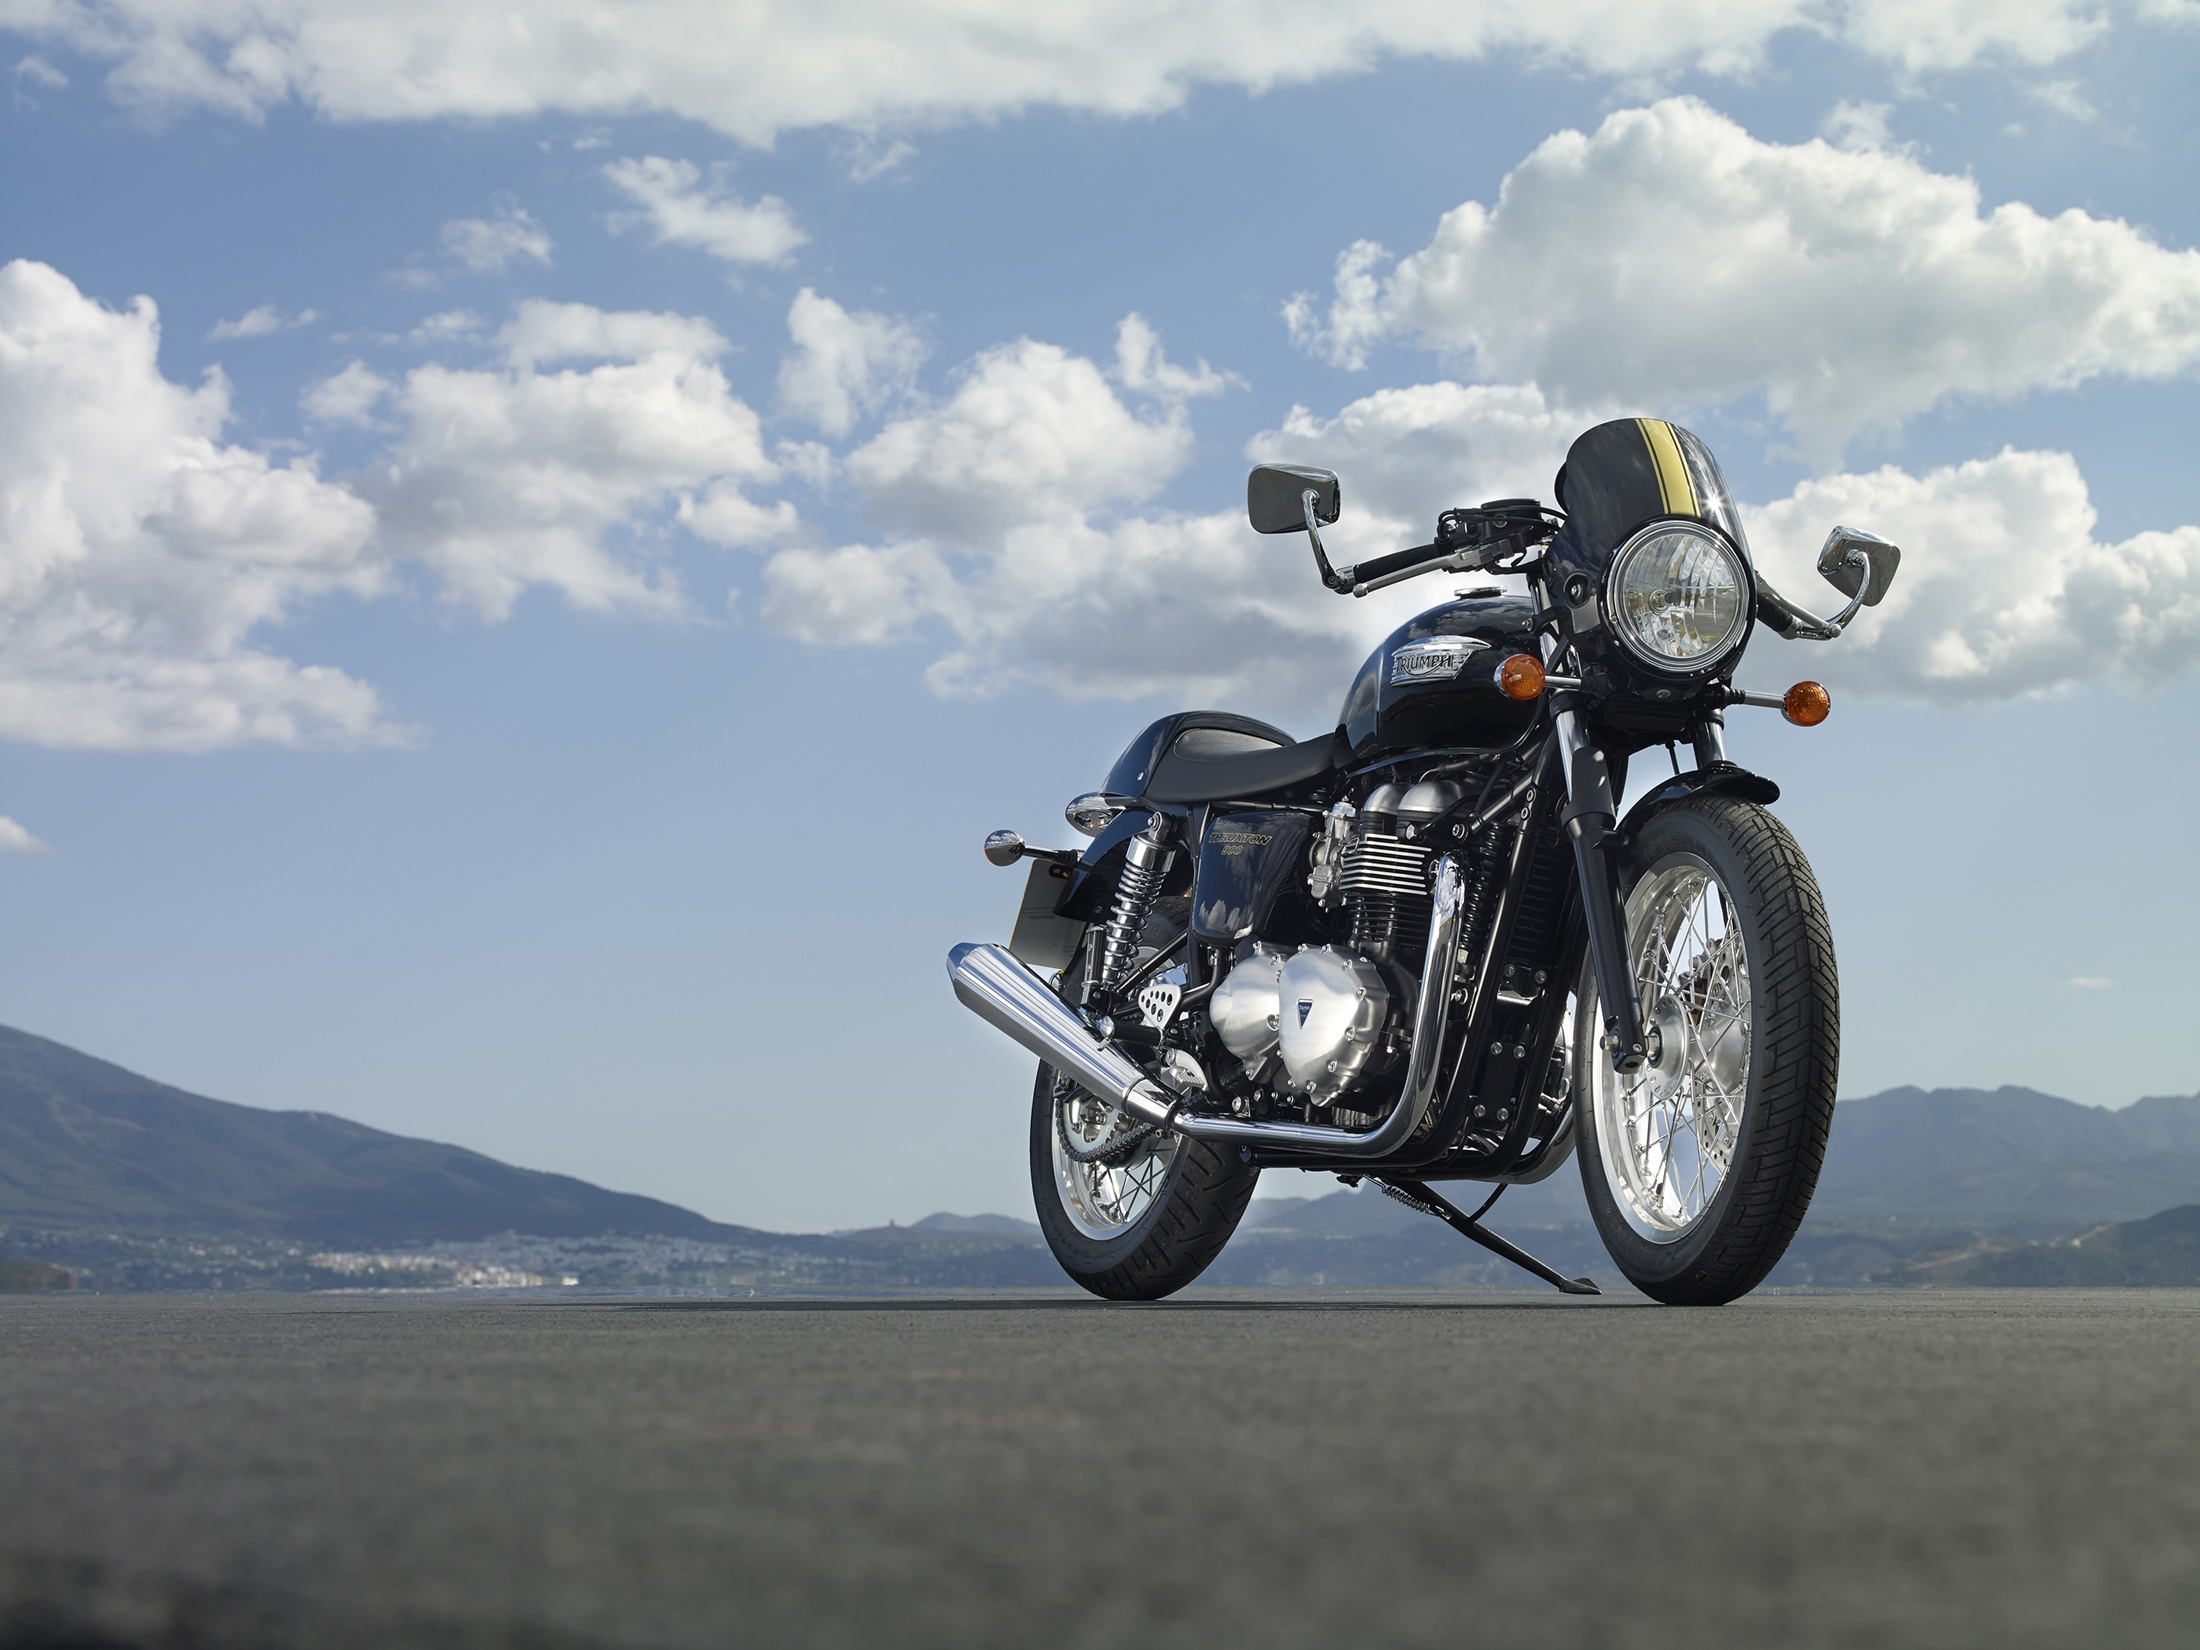 Triumph registers 600 bookings in 8 months